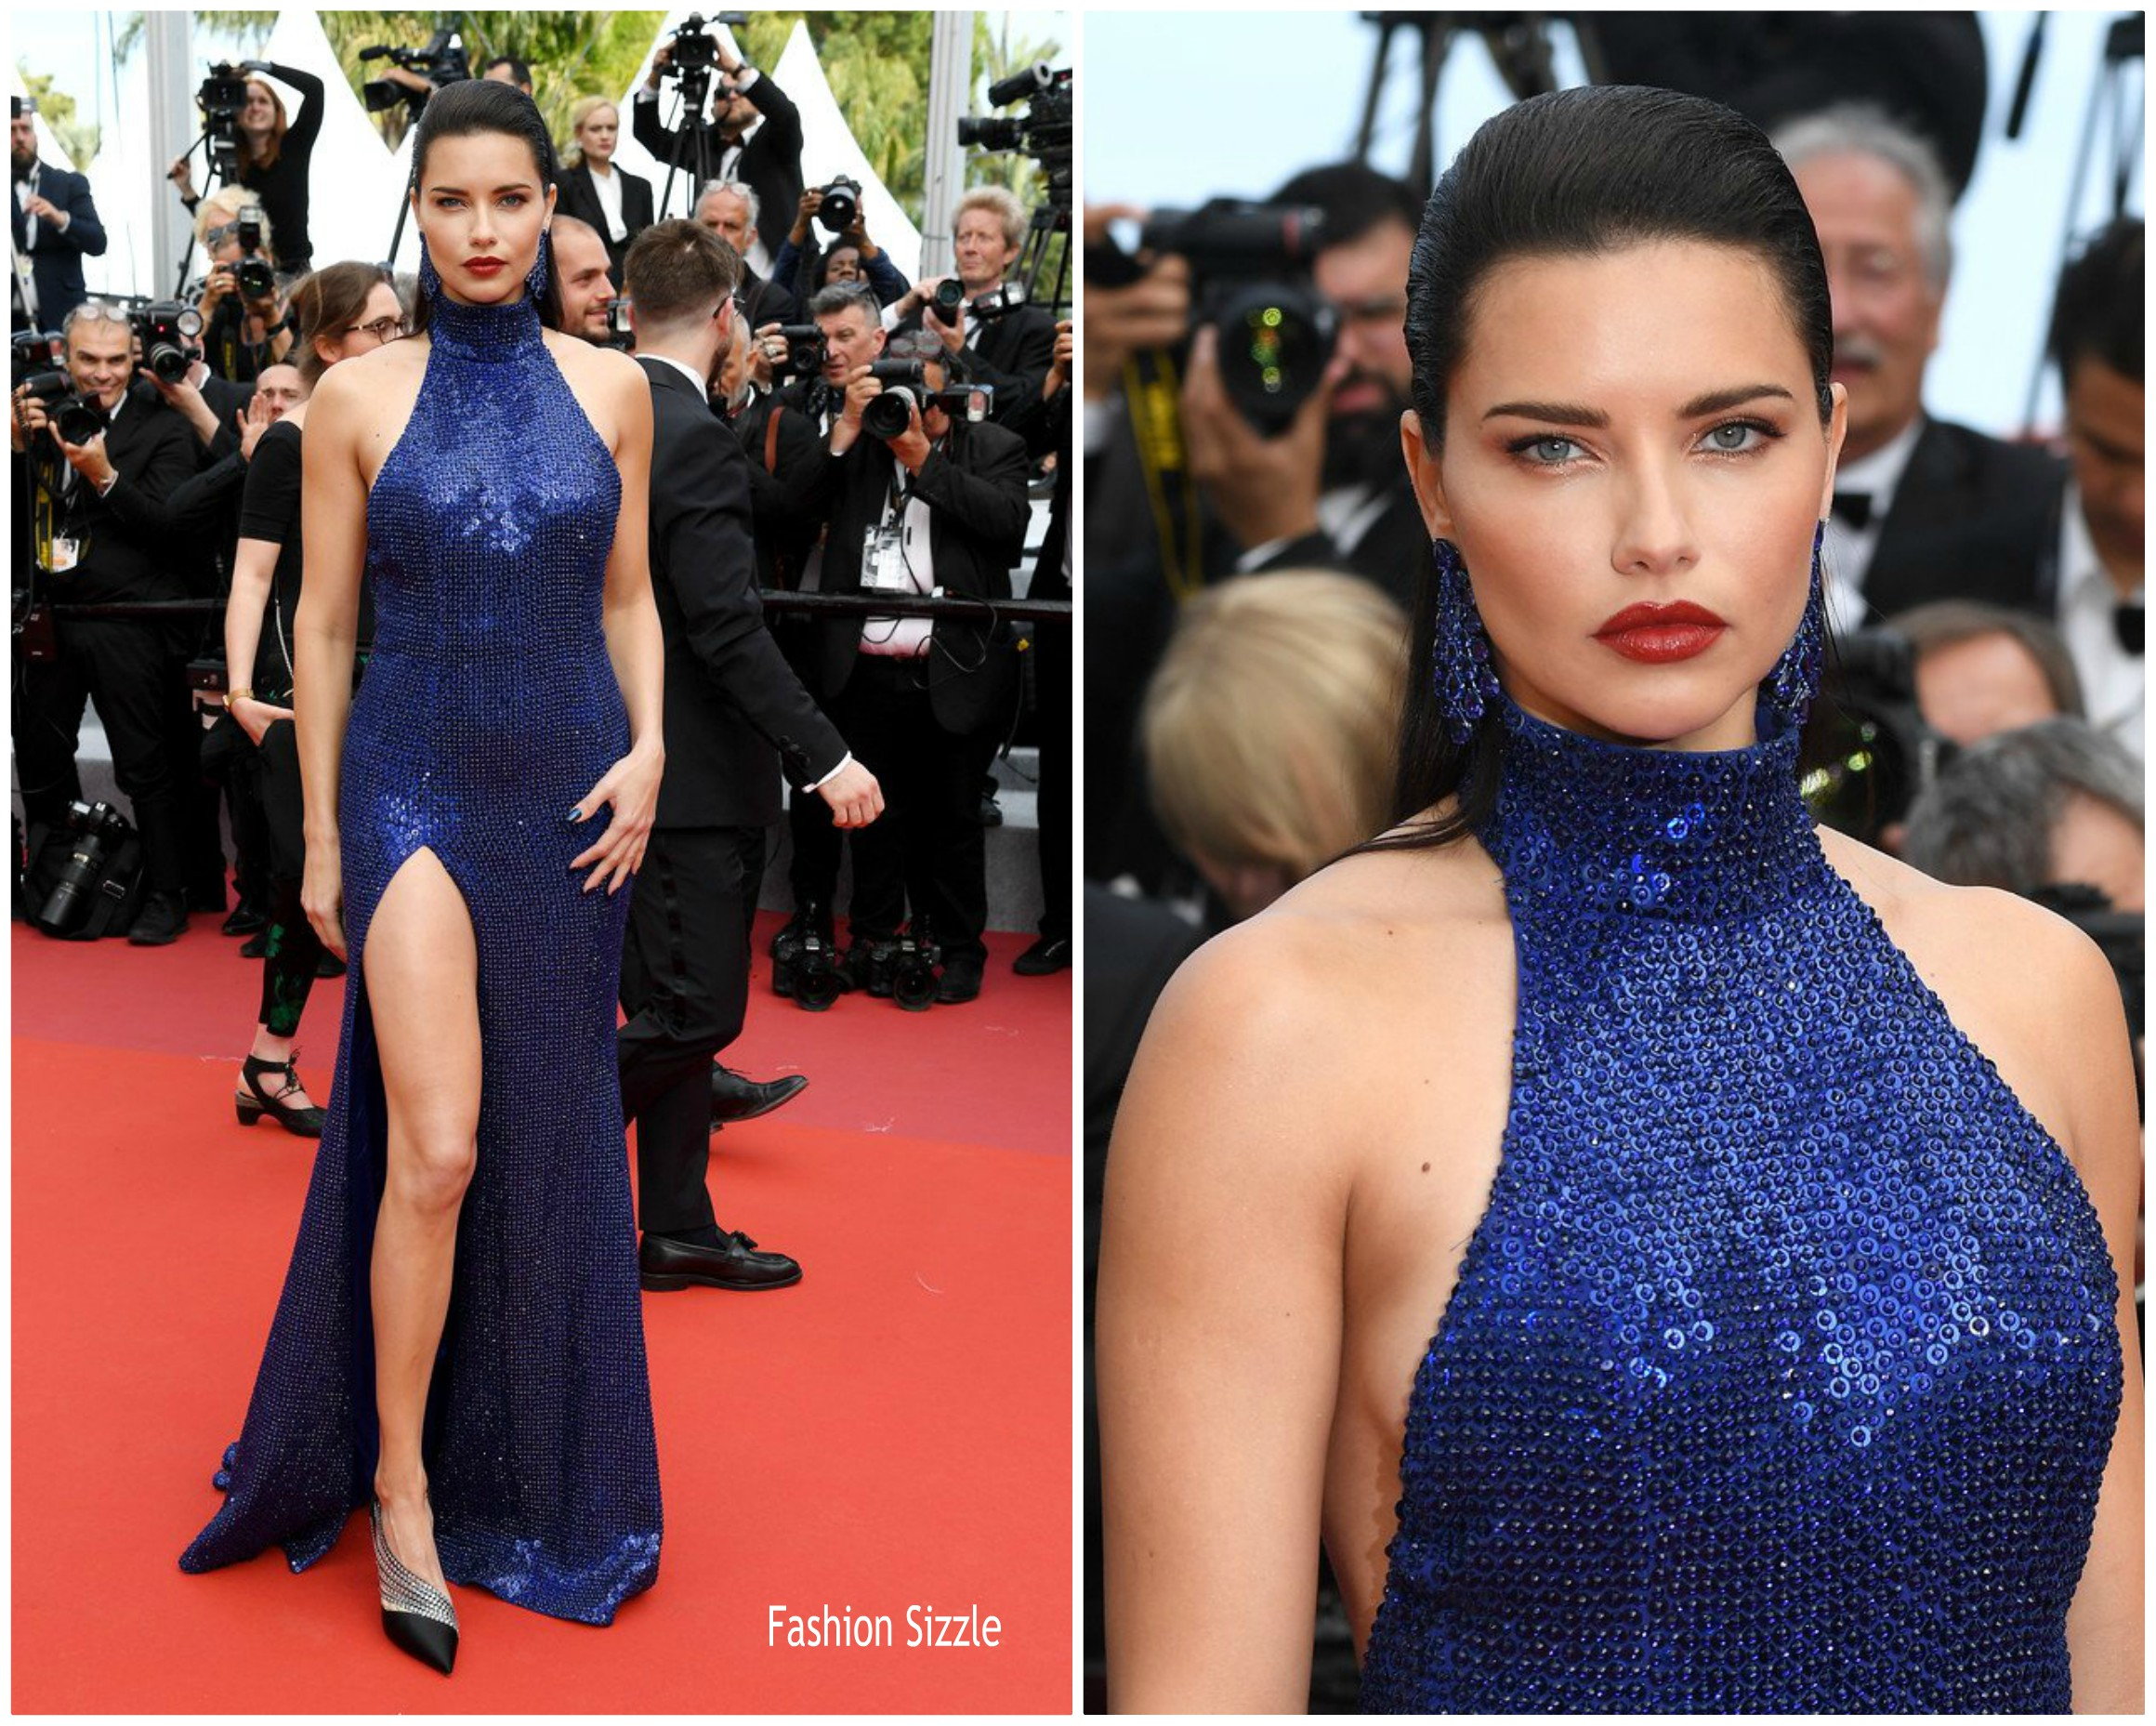 adriana-lima-in-michael-kors-oh-mercy-roubaix-une-lumiere-cannes-film-festival-premiere